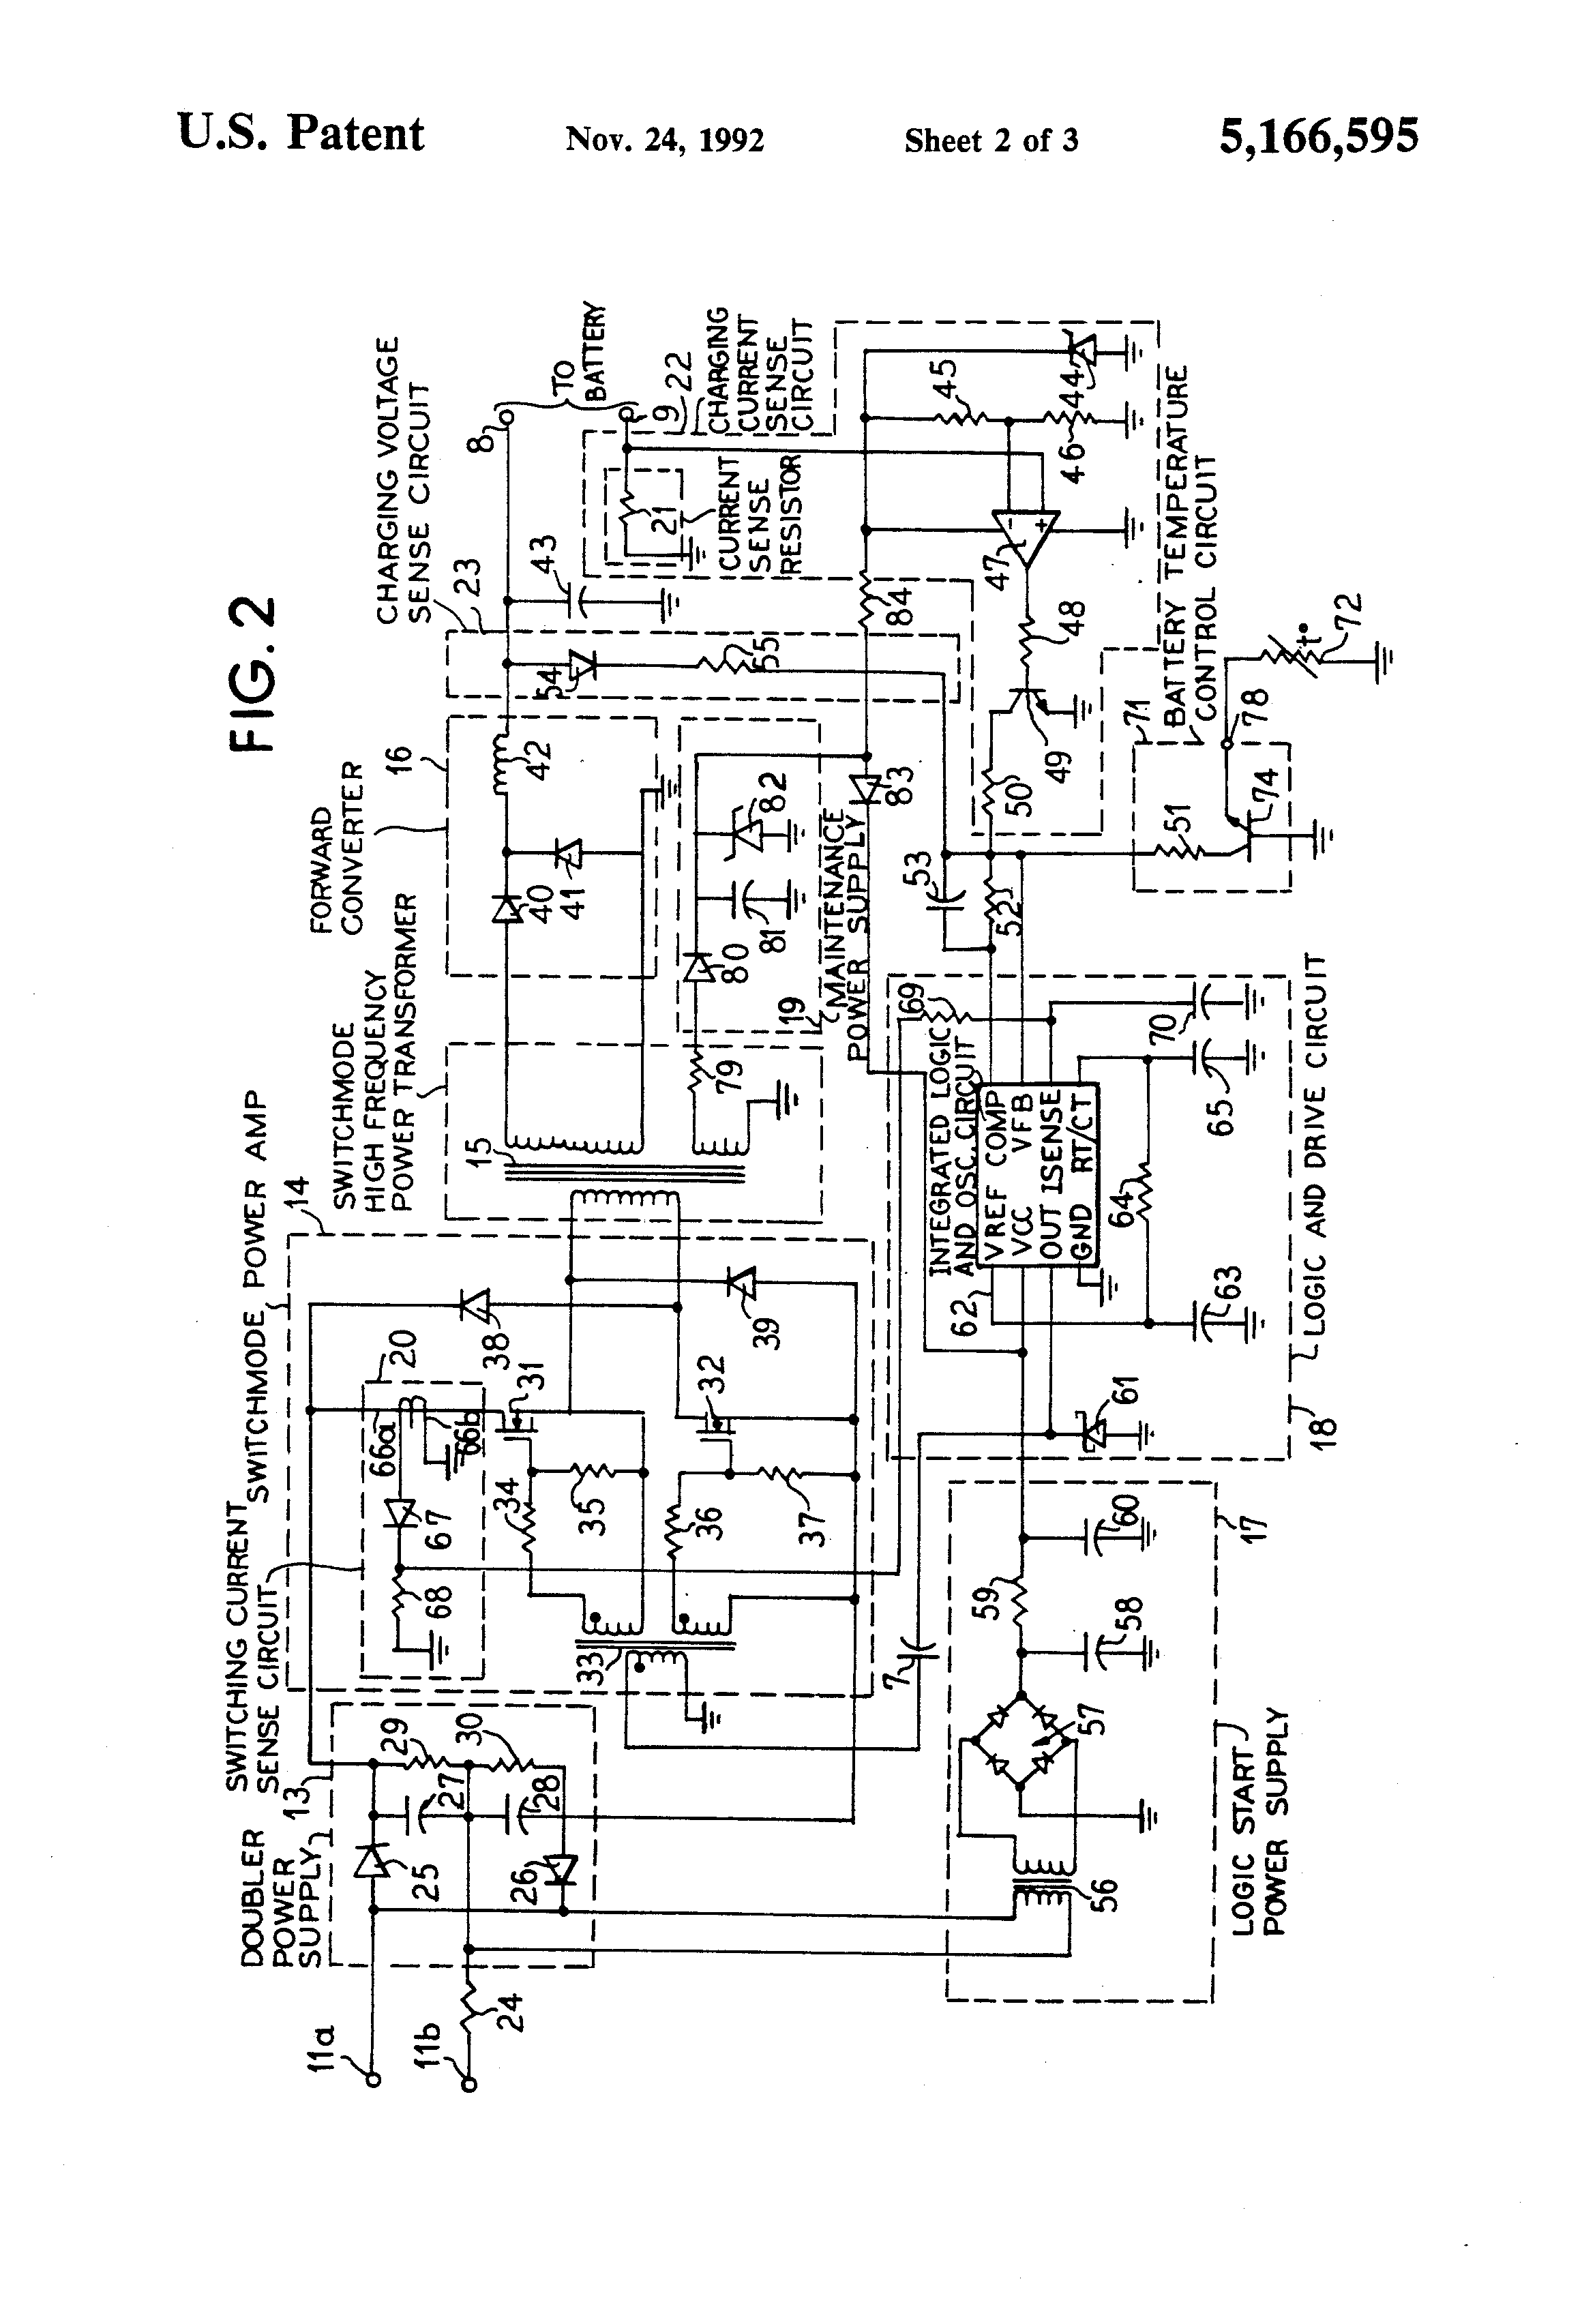 christie battery charger wiring diagram christie patent us5166595 switch mode battery charging system google on christie battery charger wiring diagram